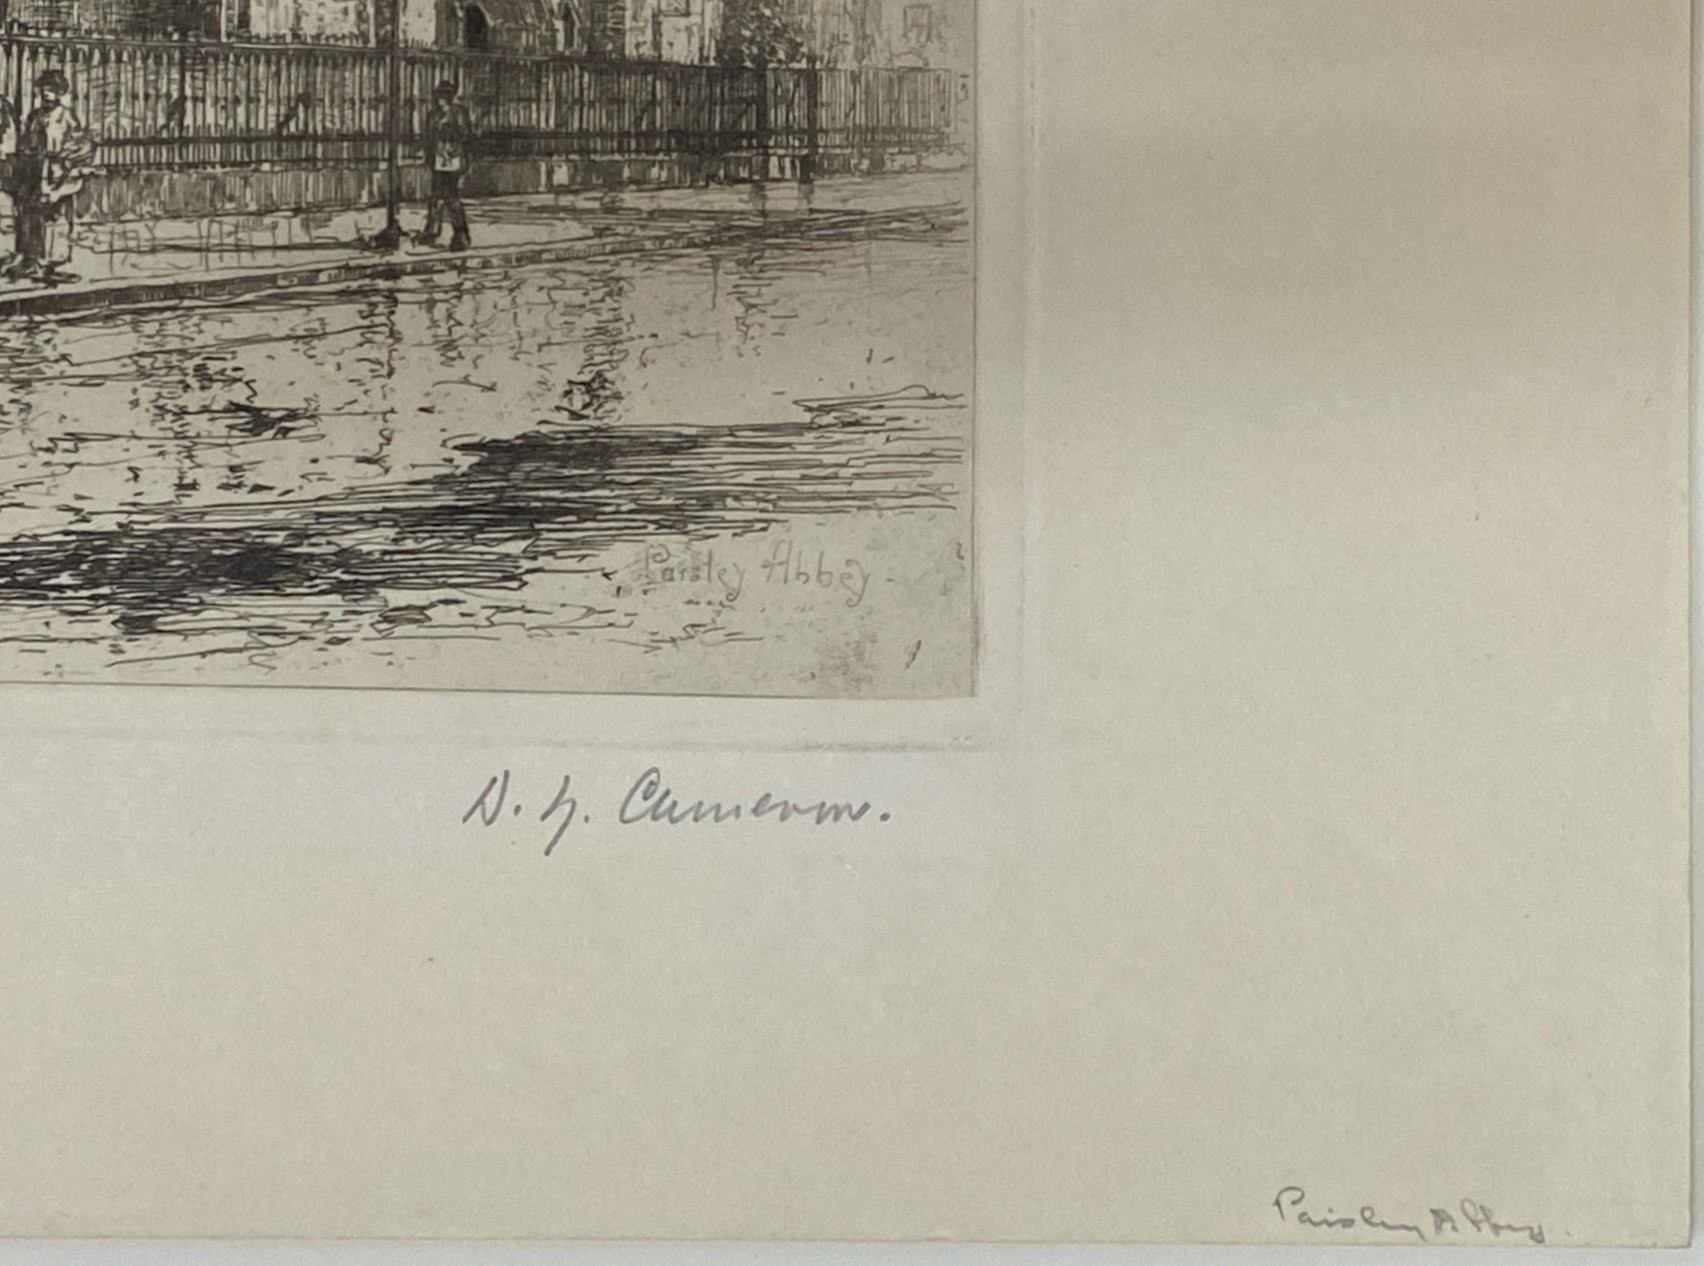 """David Young Cameron signed etching """"Paisley Abbey"""" - Image 5 of 5"""